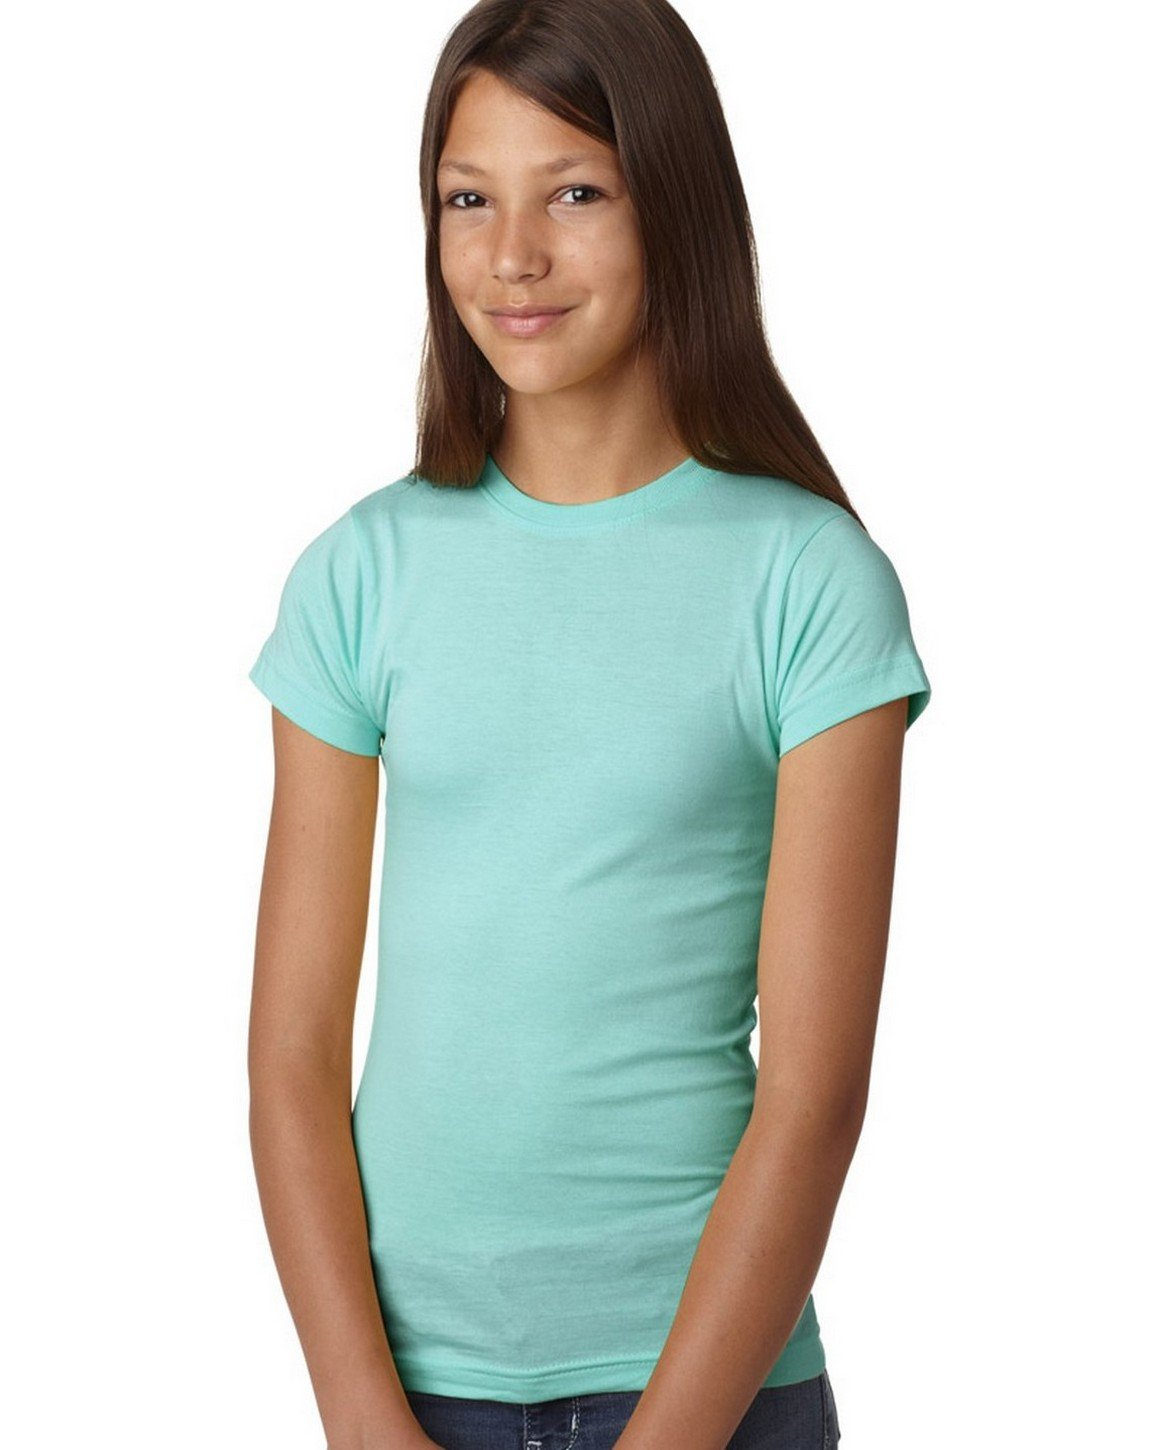 LAT Girls' Fine Jersey T-Shirt, CHILL, X-Small